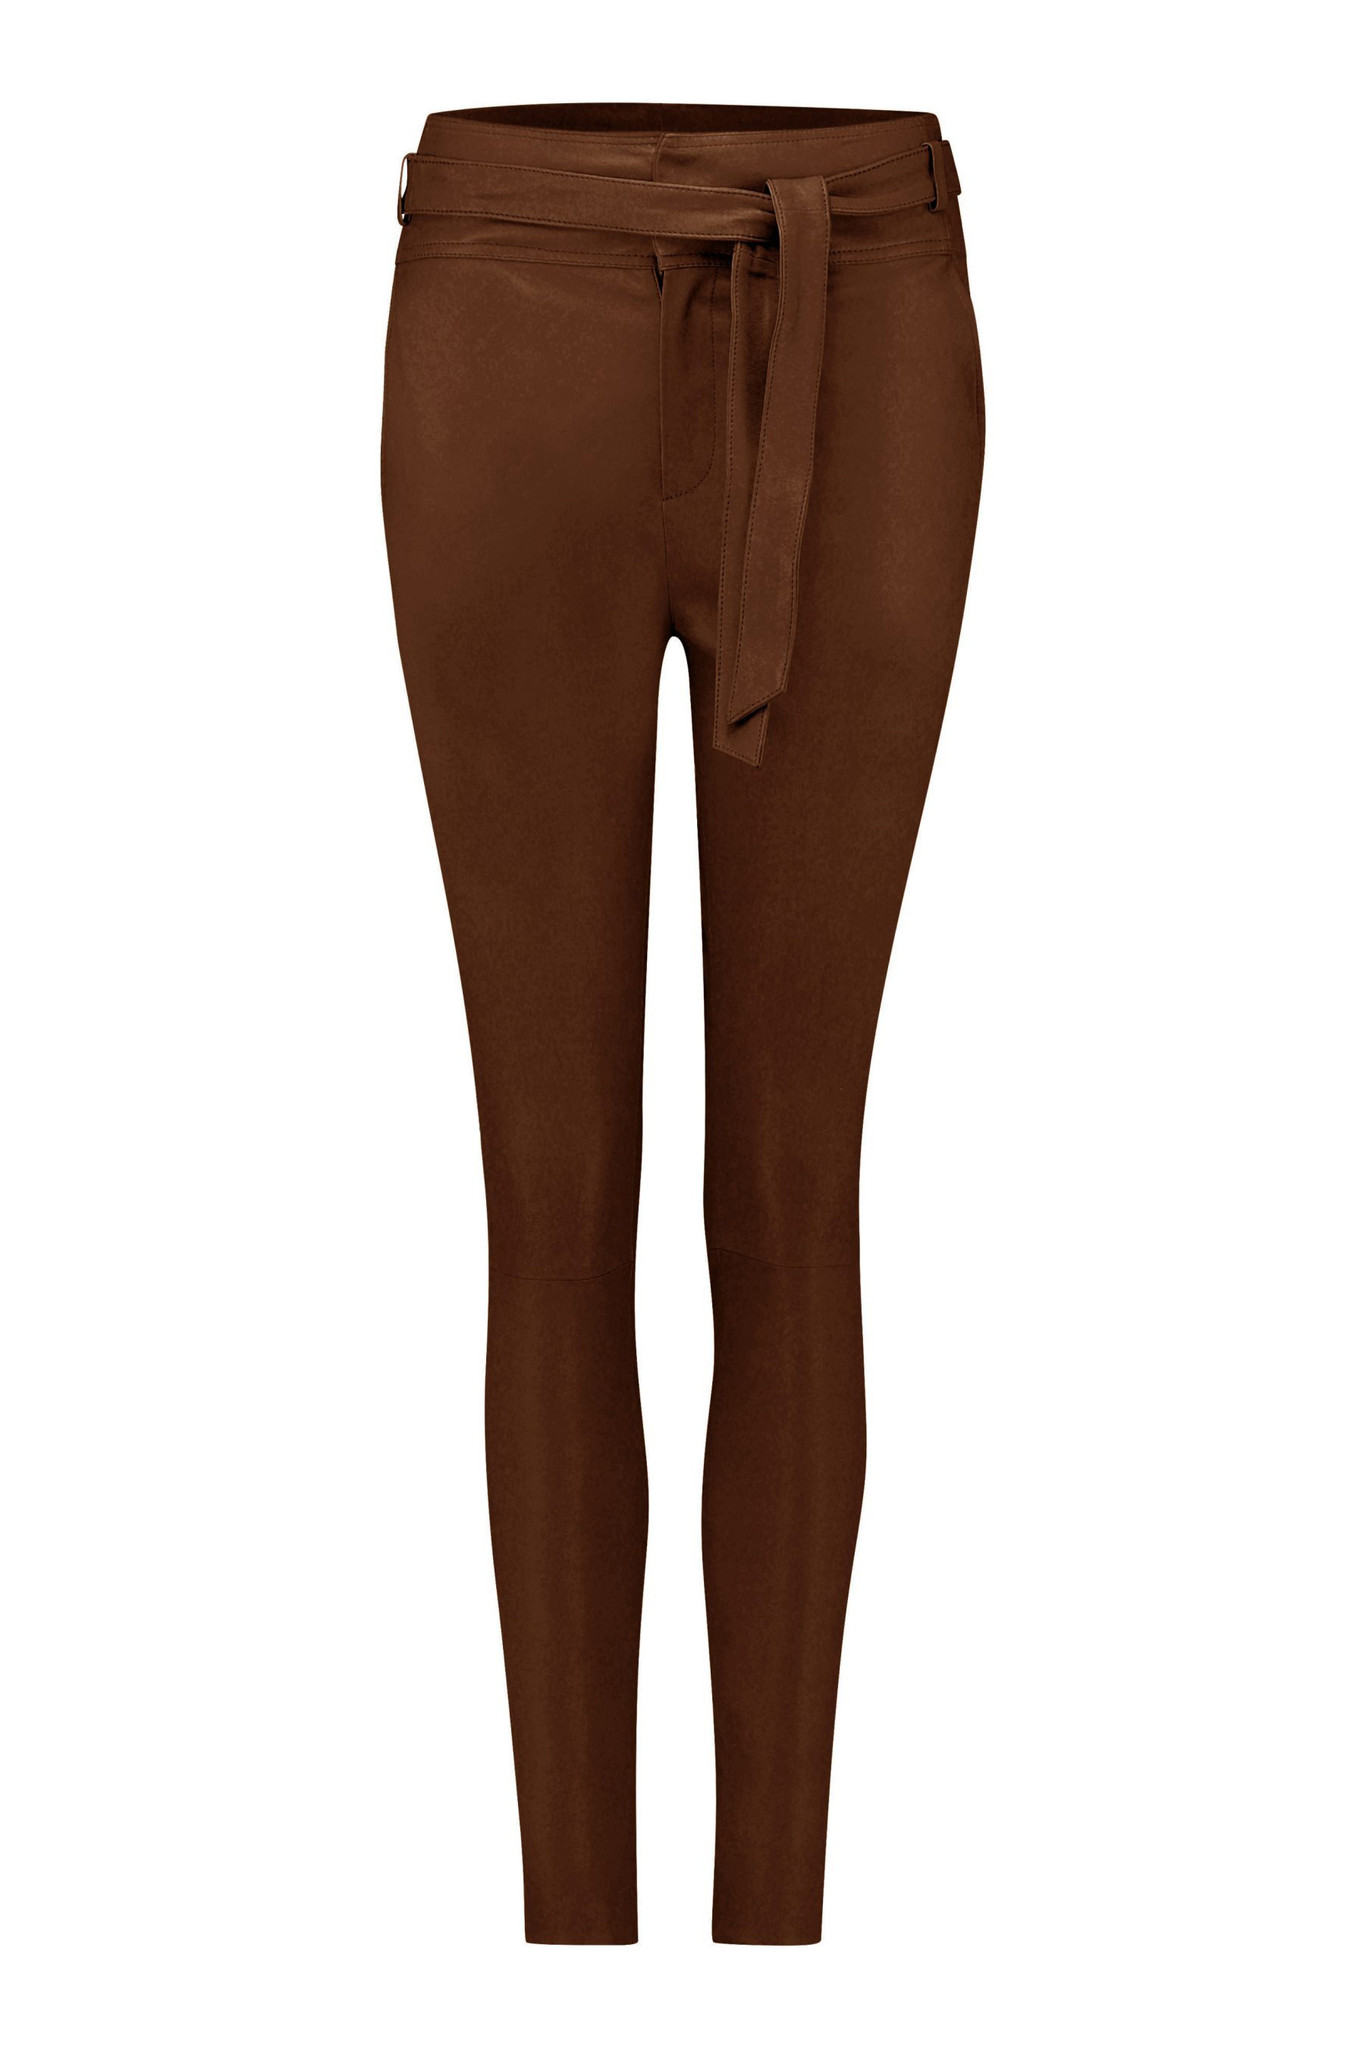 Ann Leather Pant - Brown-1